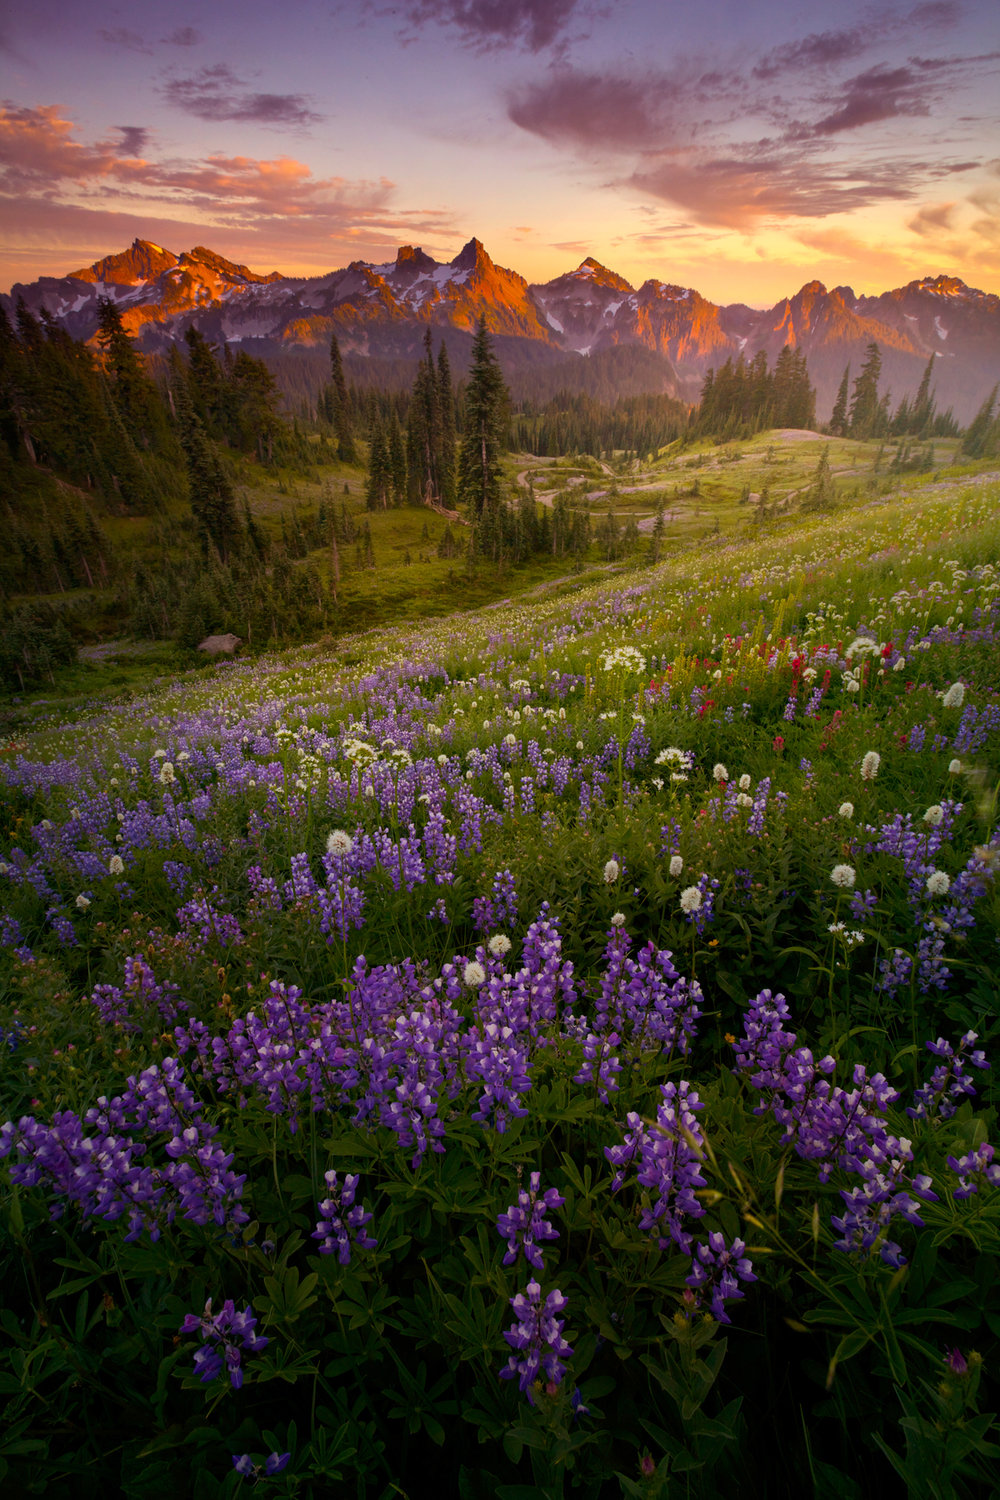 Tatoosh+Range+Final-2268093312-O.jpg